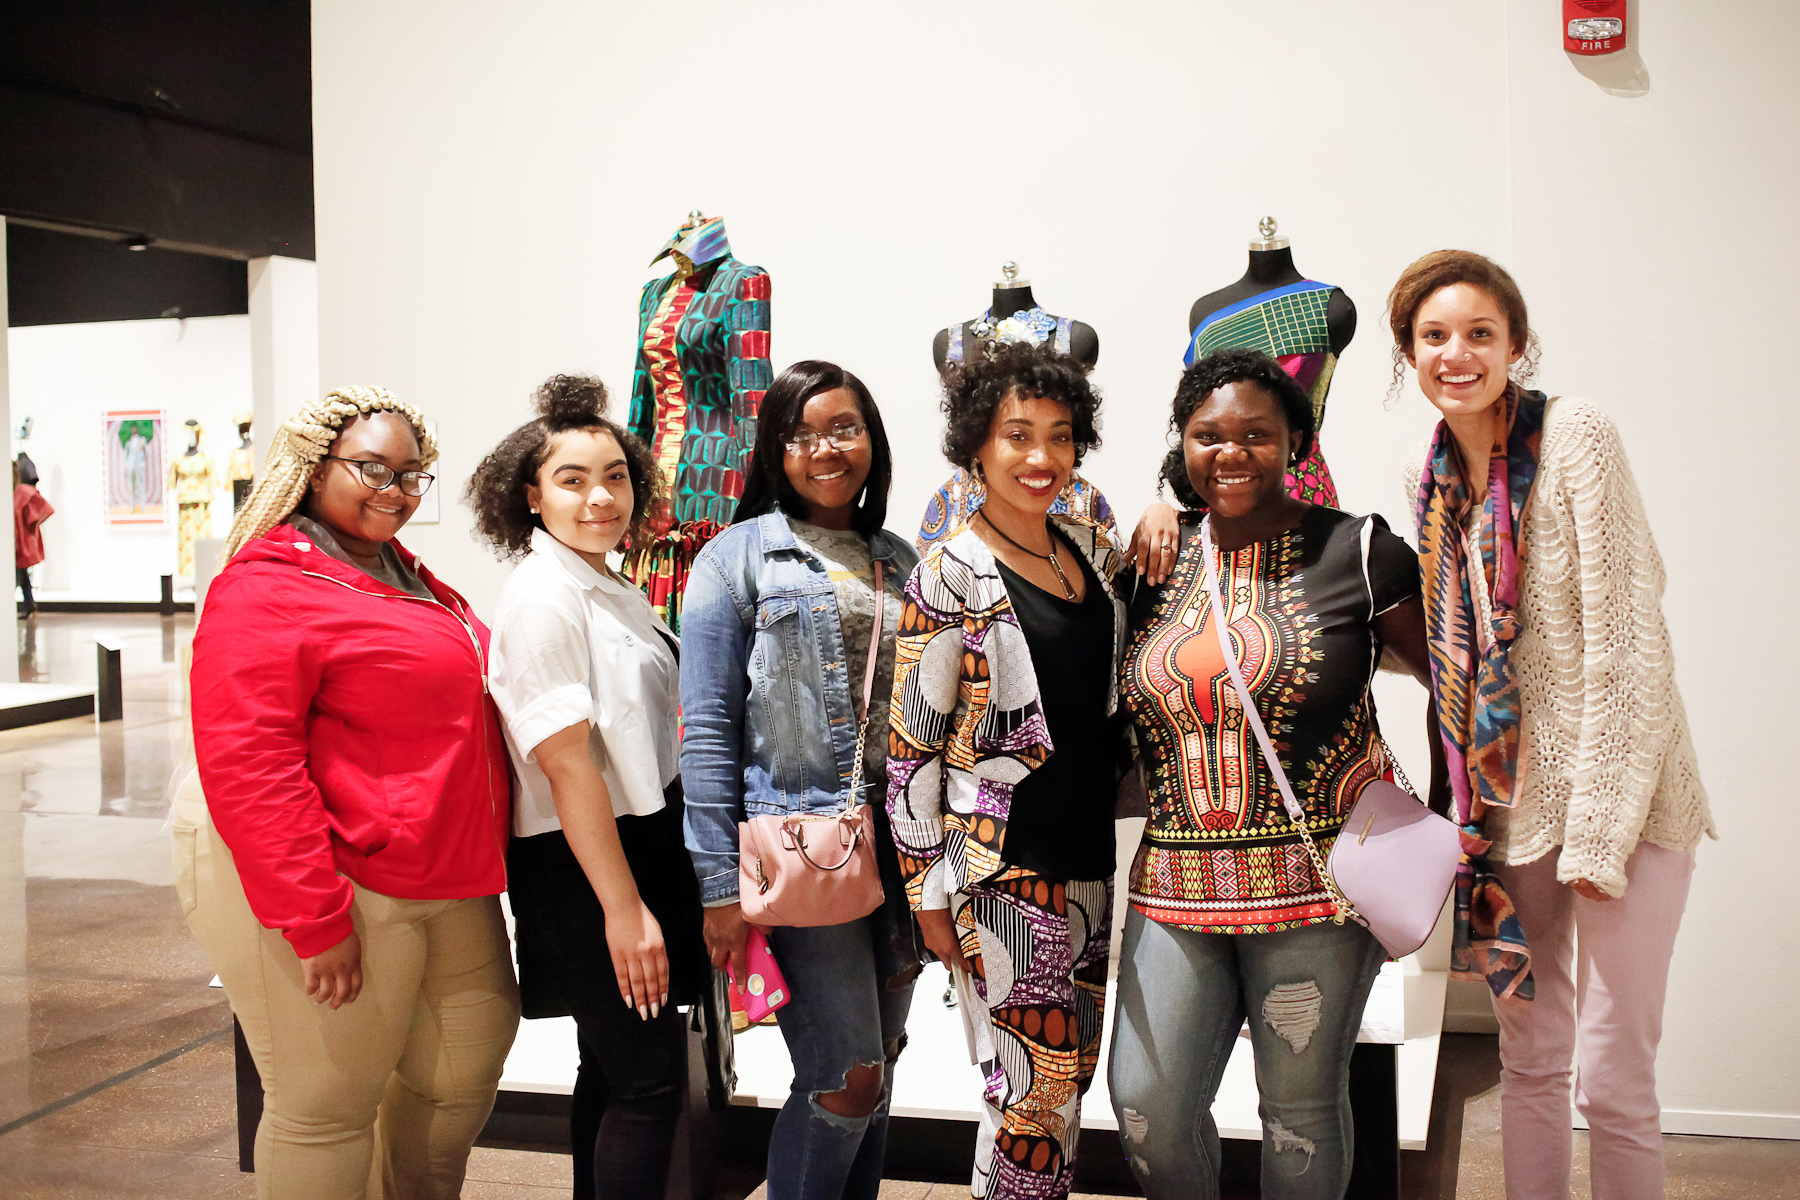 Andrea Fenise Memphis Fashion Blogger hosts Tour of African Print Fashion Now at Brooks Museum of Art